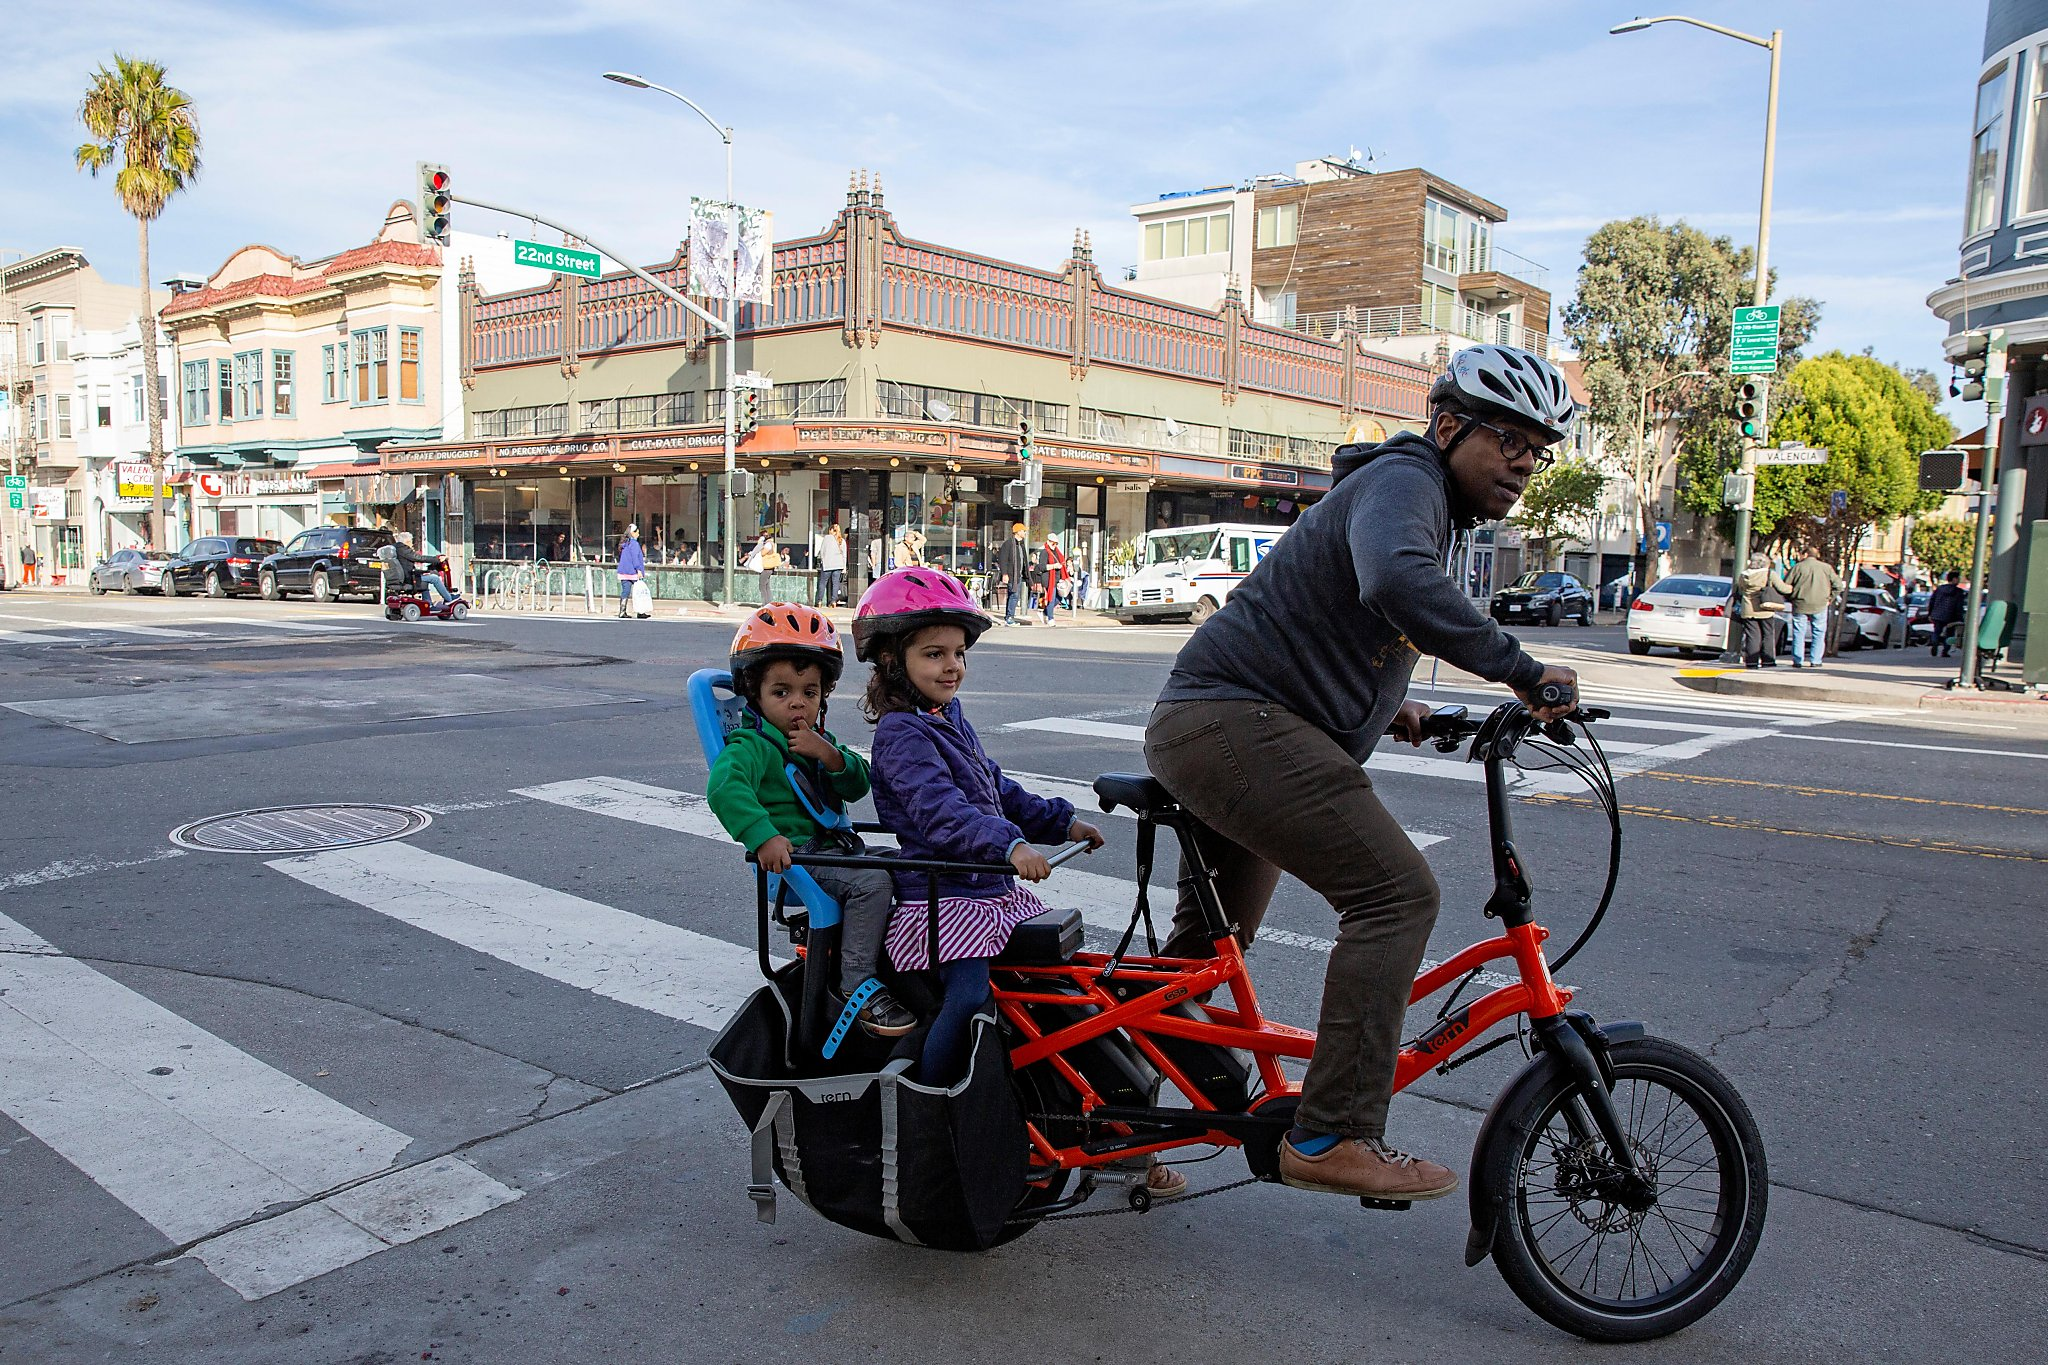 E-bikes are wildly popular in the Bay Area. Can they really replace cars?